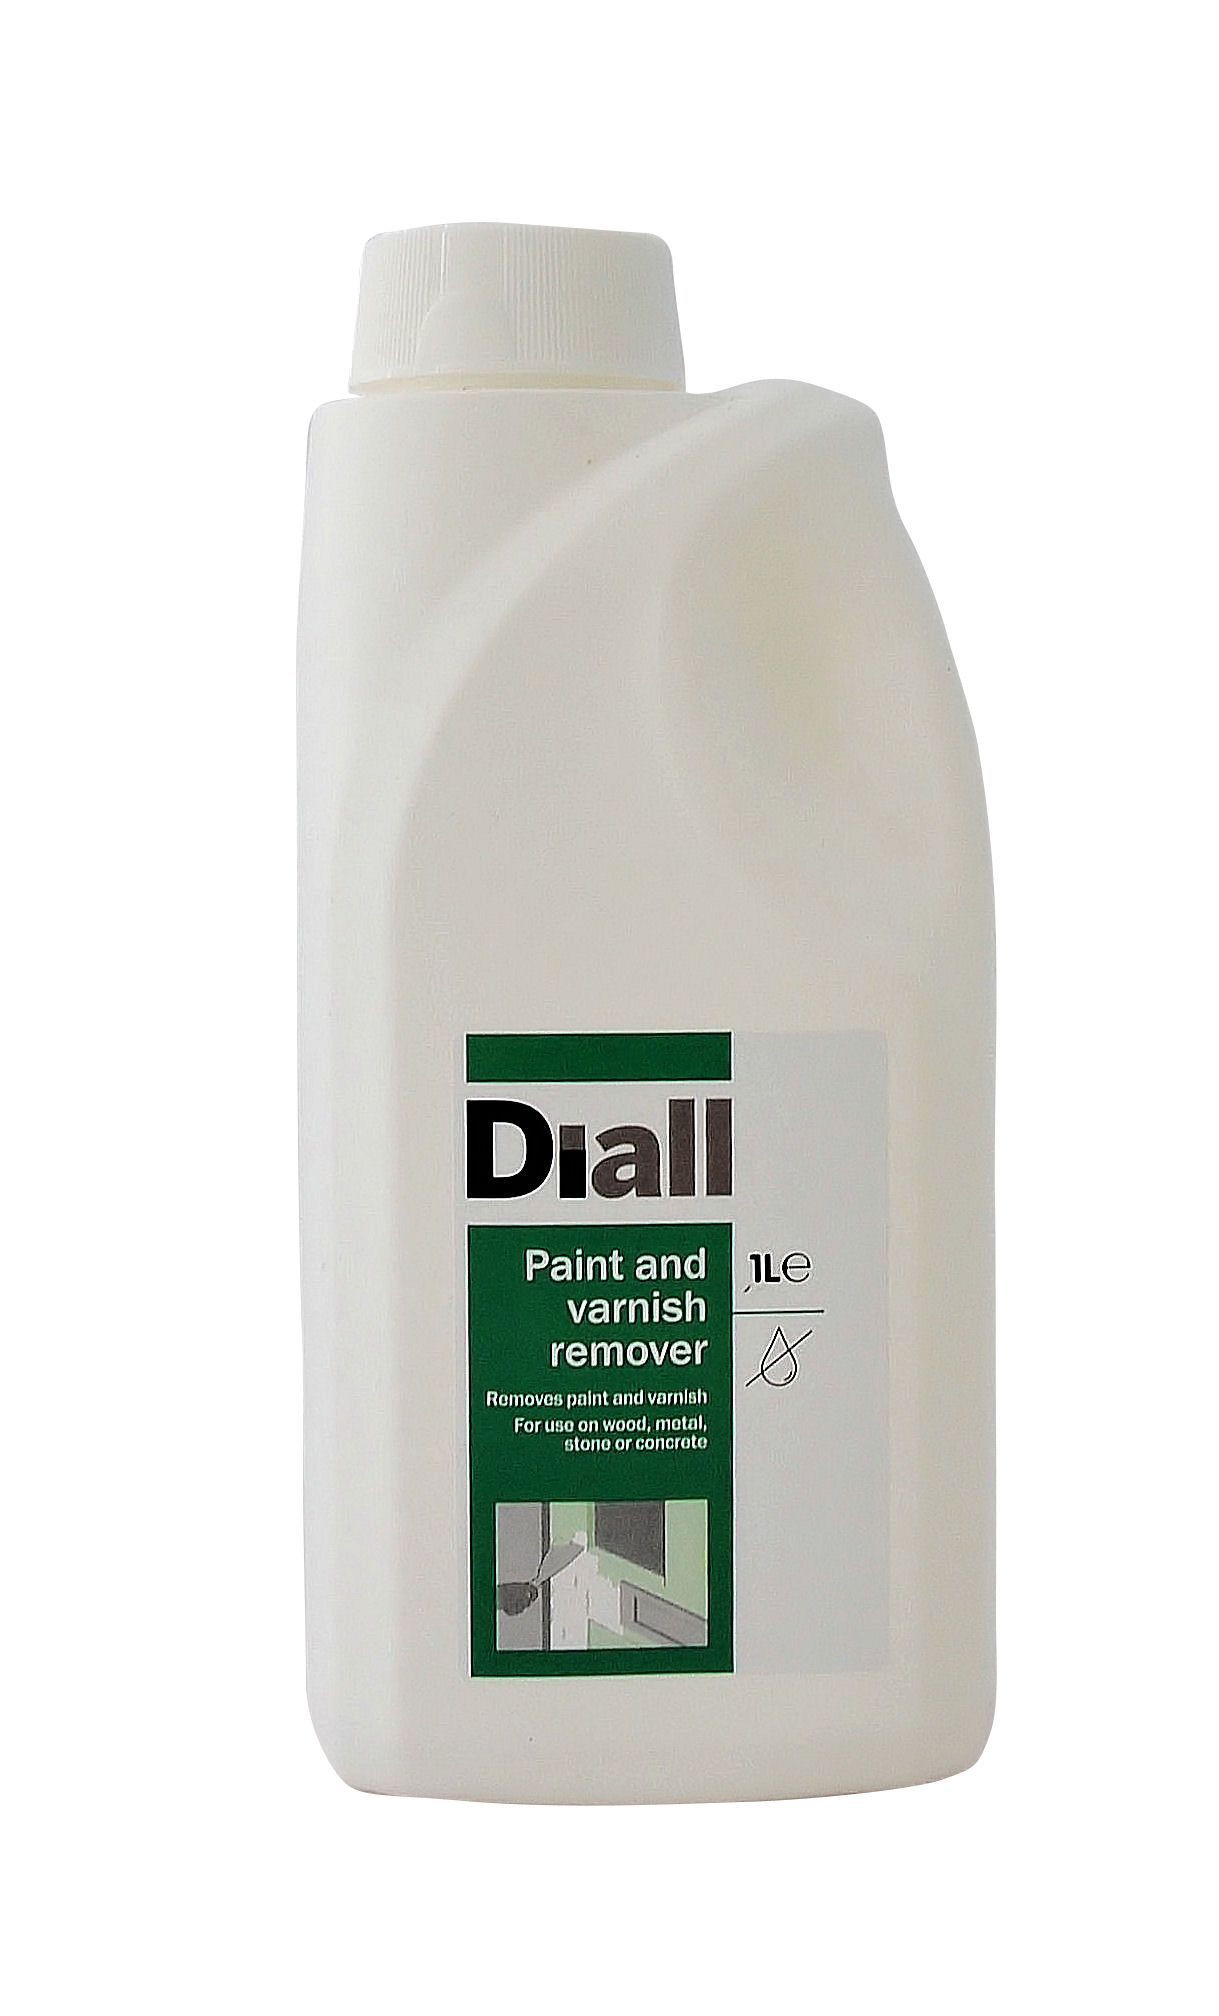 Best ideas about DIY Paint Remover . Save or Pin B&Q Paint & Varnish Remover 1L Departments Now.